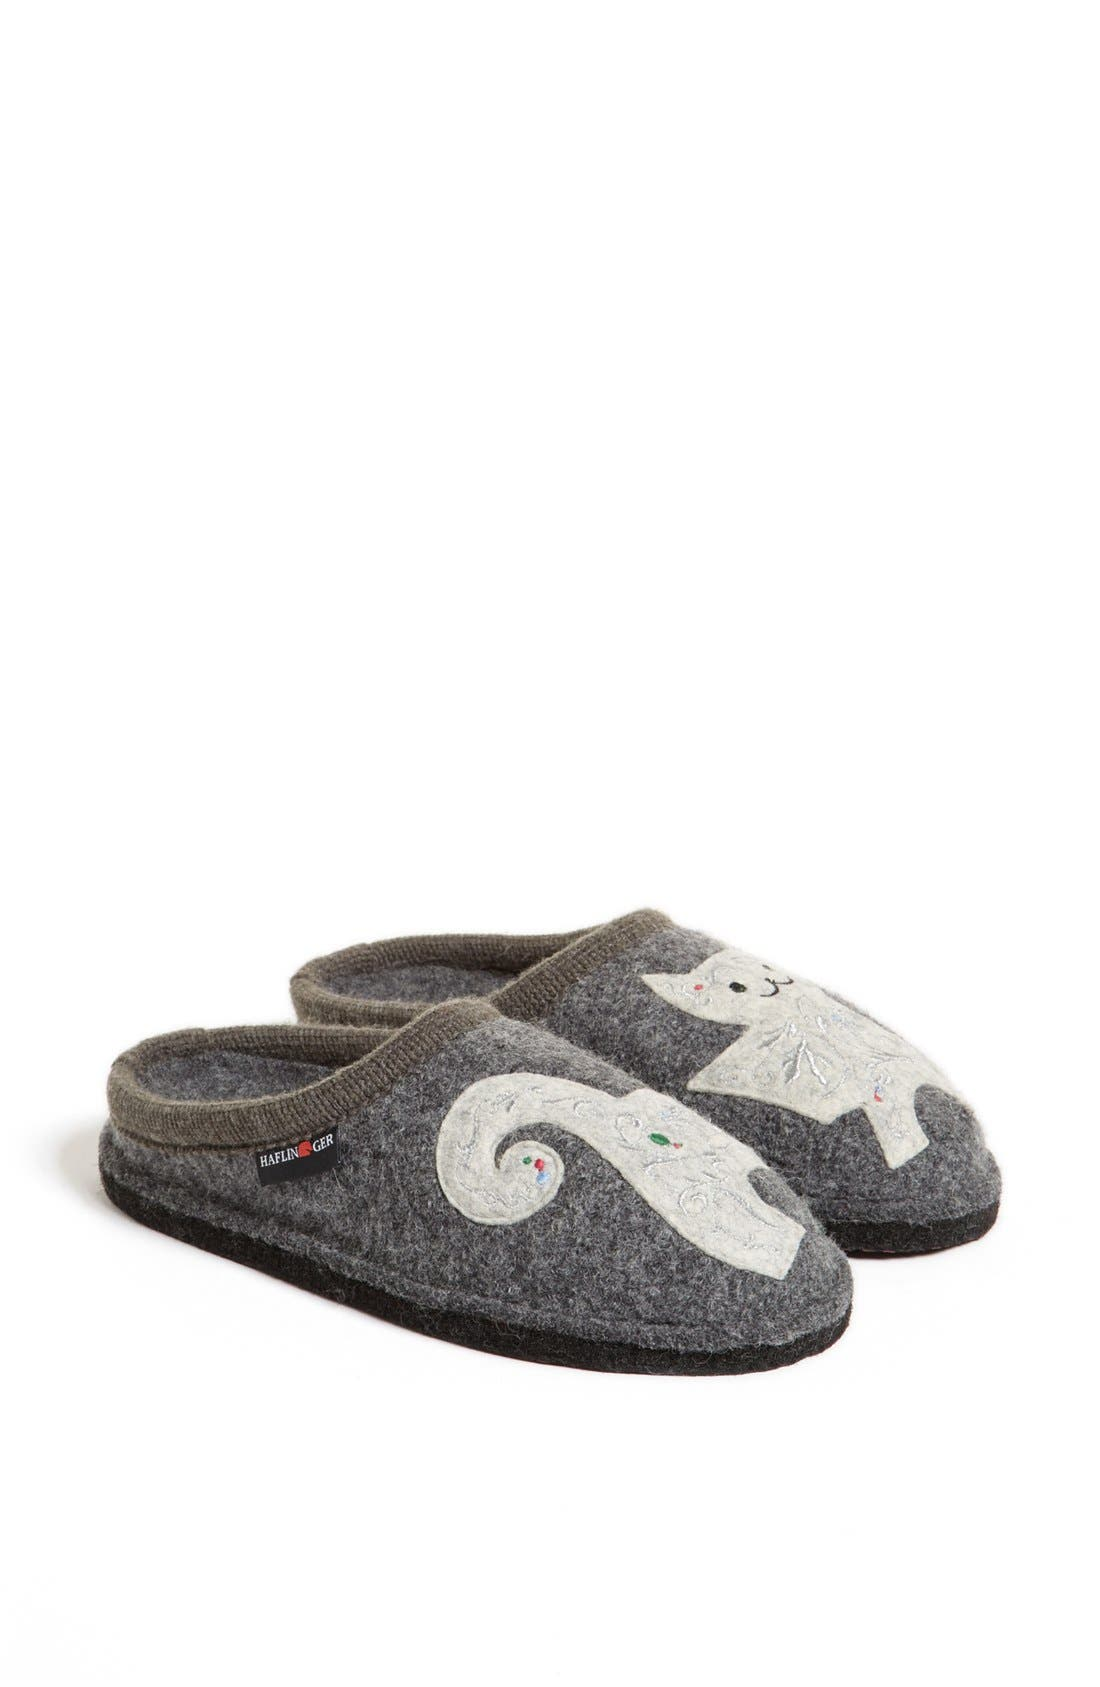 Haflinger 'Cat' Slipper